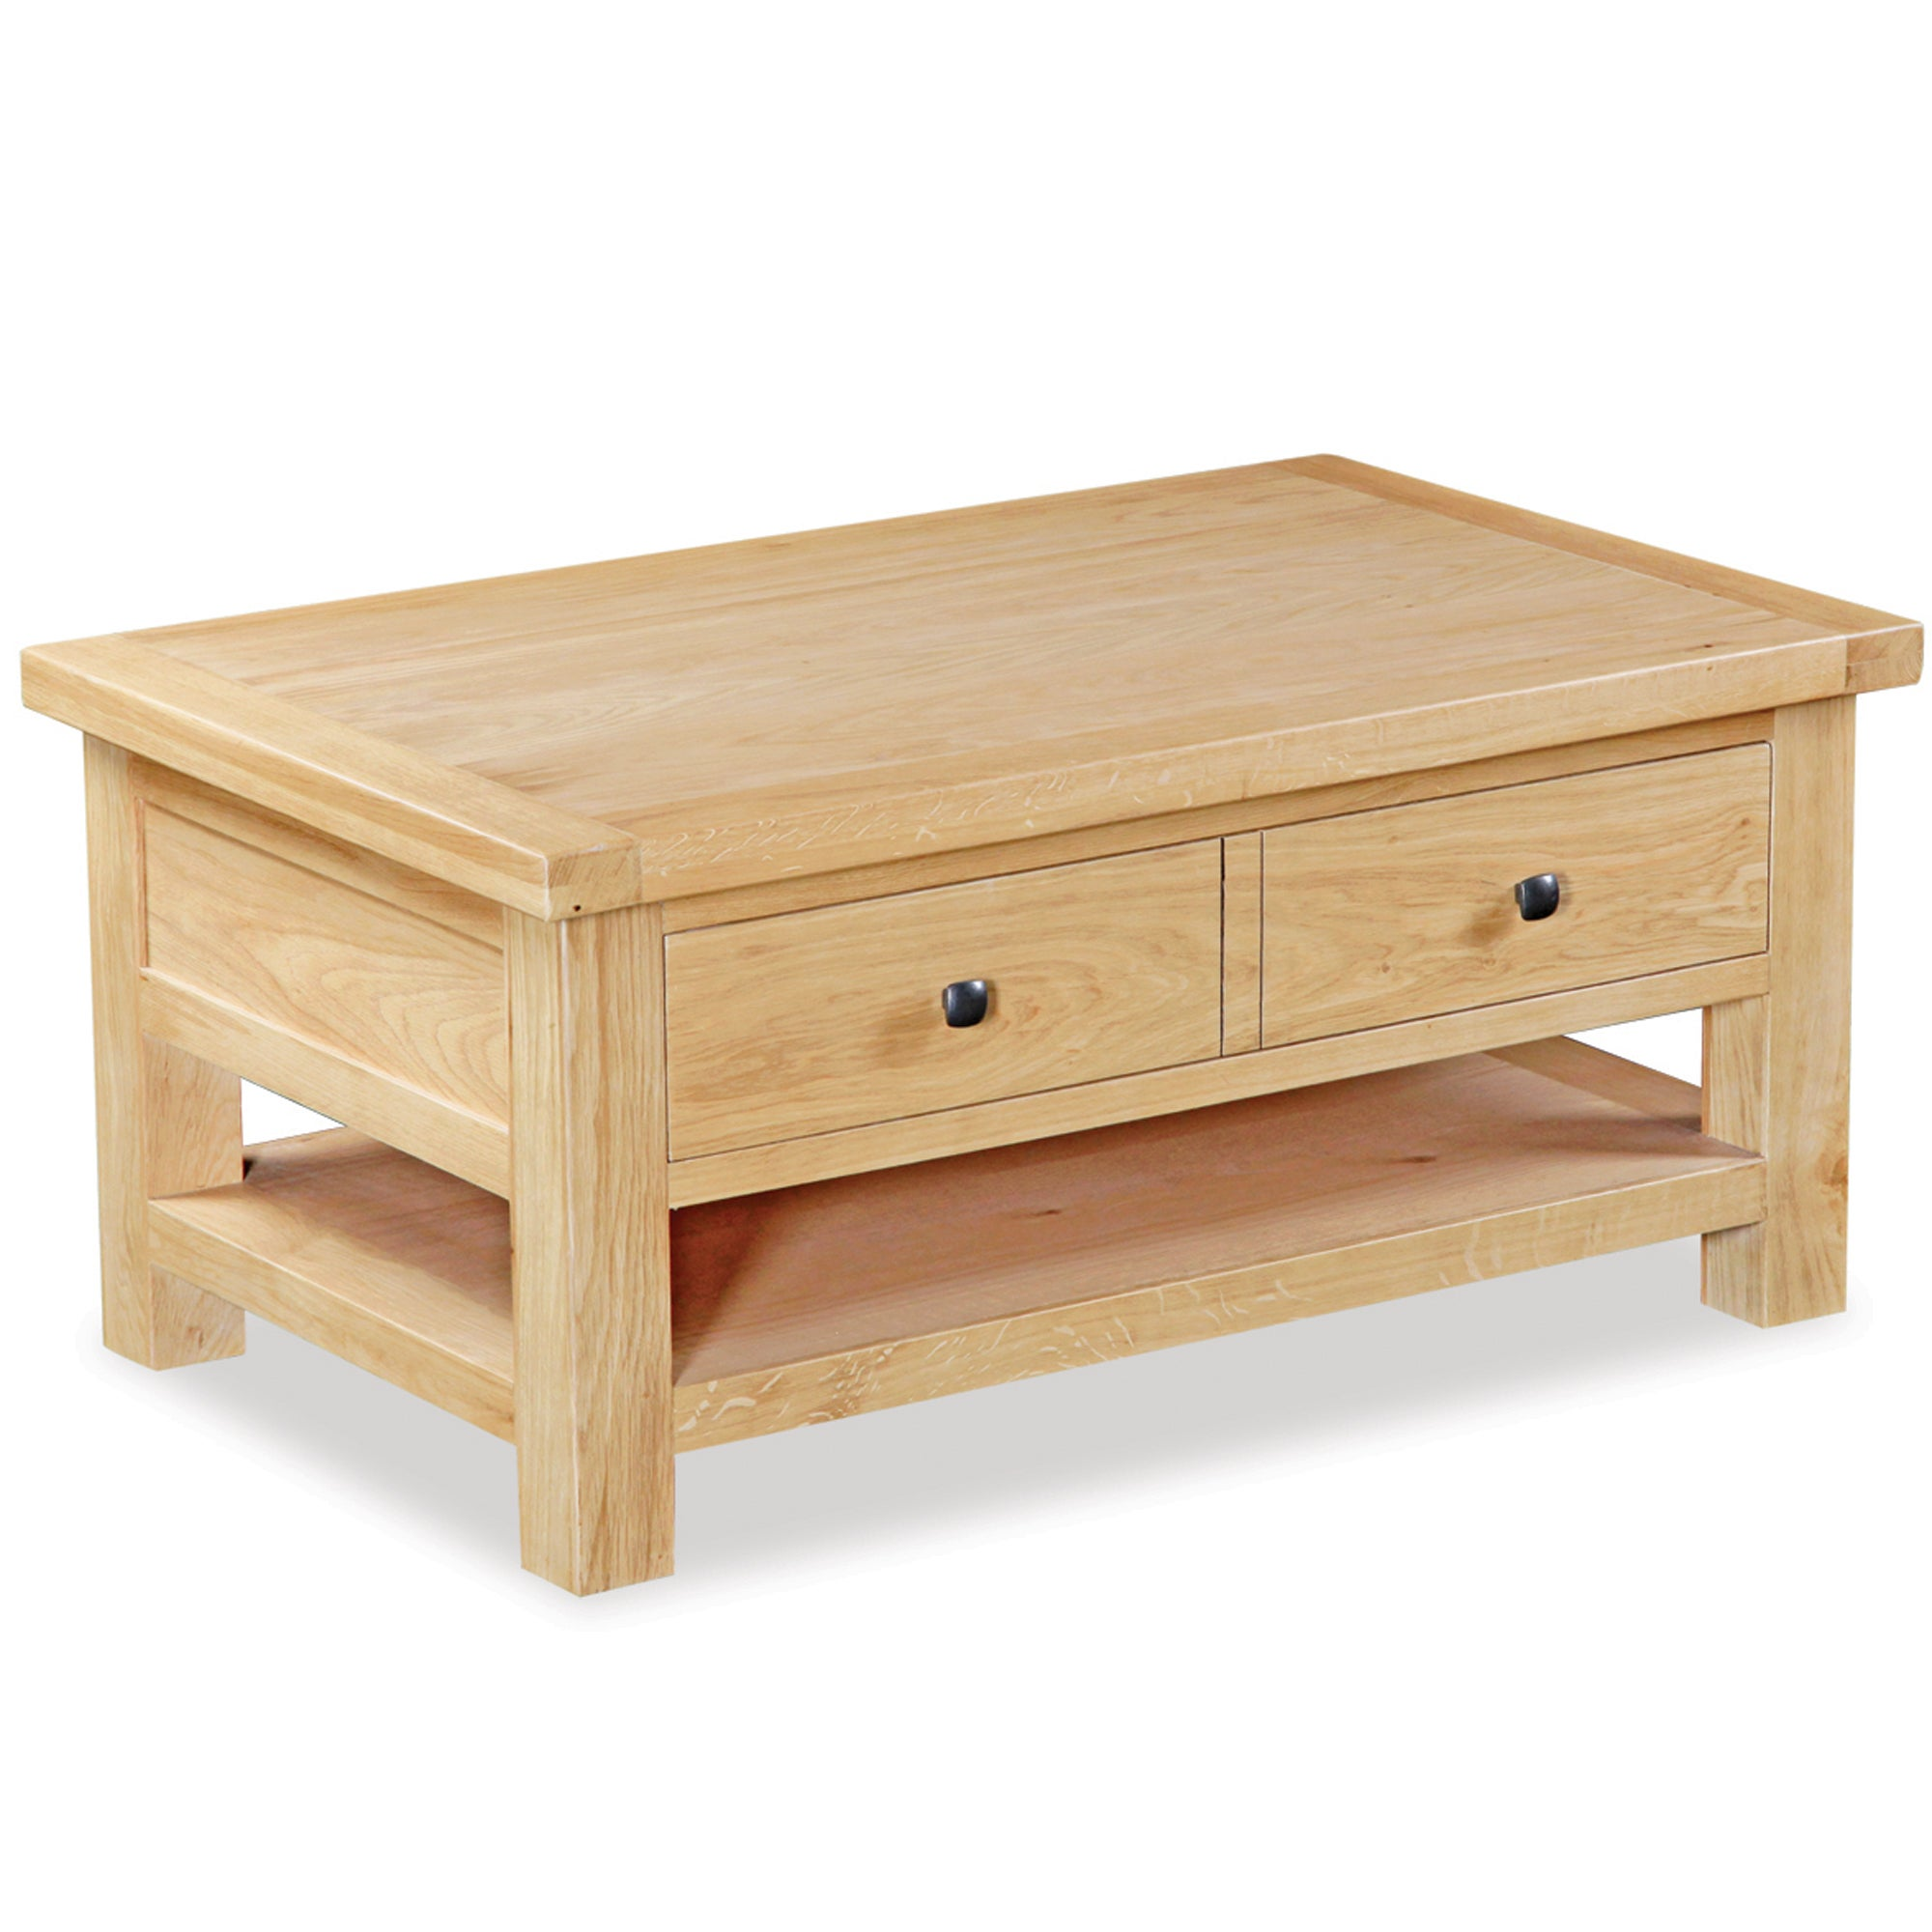 Harrogate Oak Large Coffee Table with Drawer